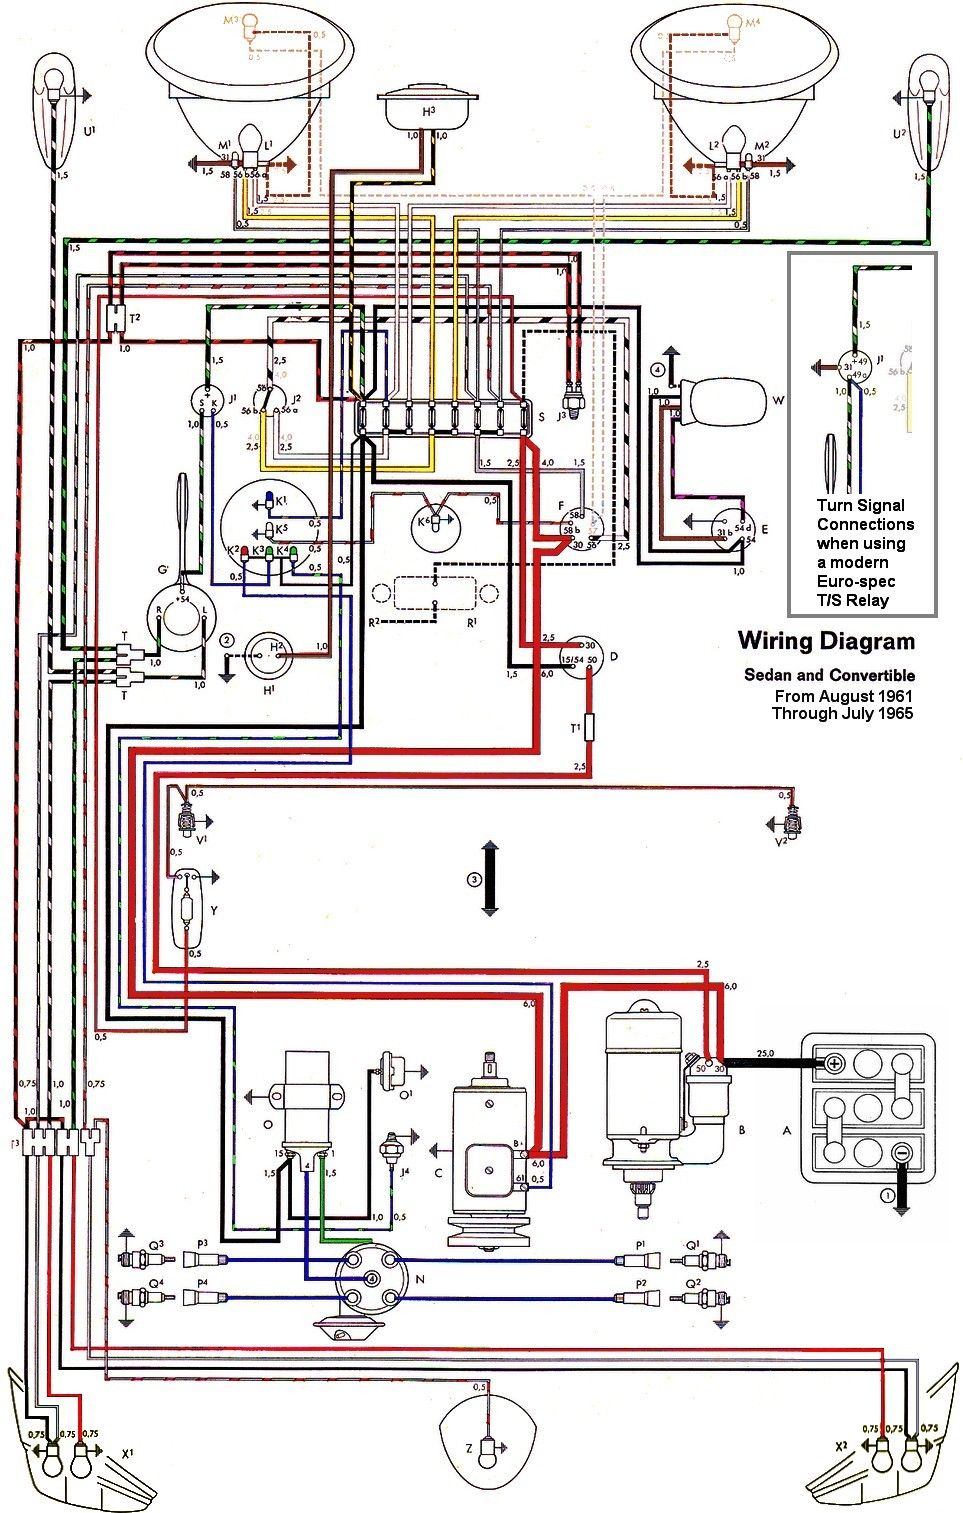 2235472c26e9b61112a110100d6ddea3 69 vw engine wiring explore wiring diagram on the net \u2022